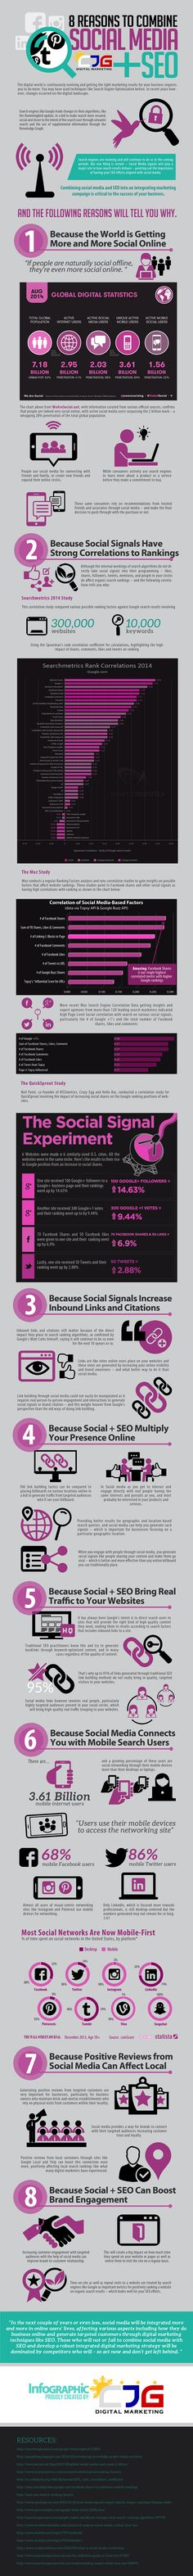 Reasons to Combine #SocialMedia and #SEO.